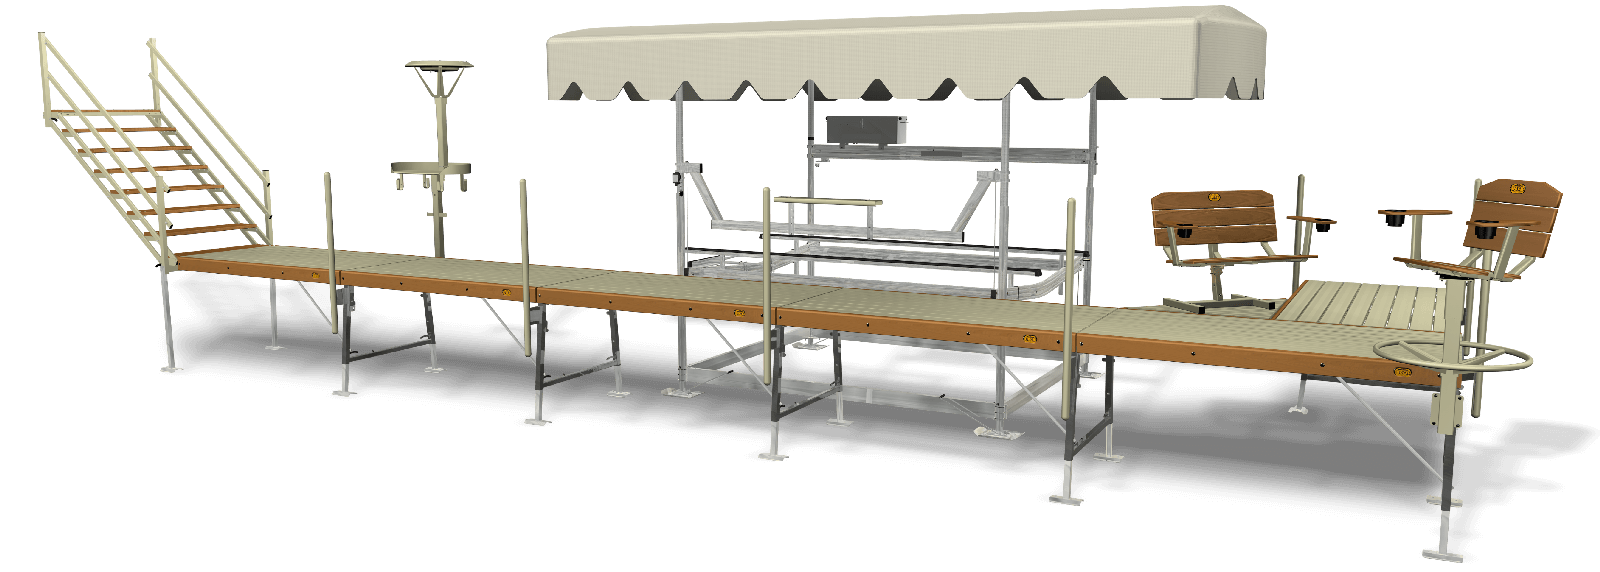 hight resolution of shorestation boat lift and dock system options